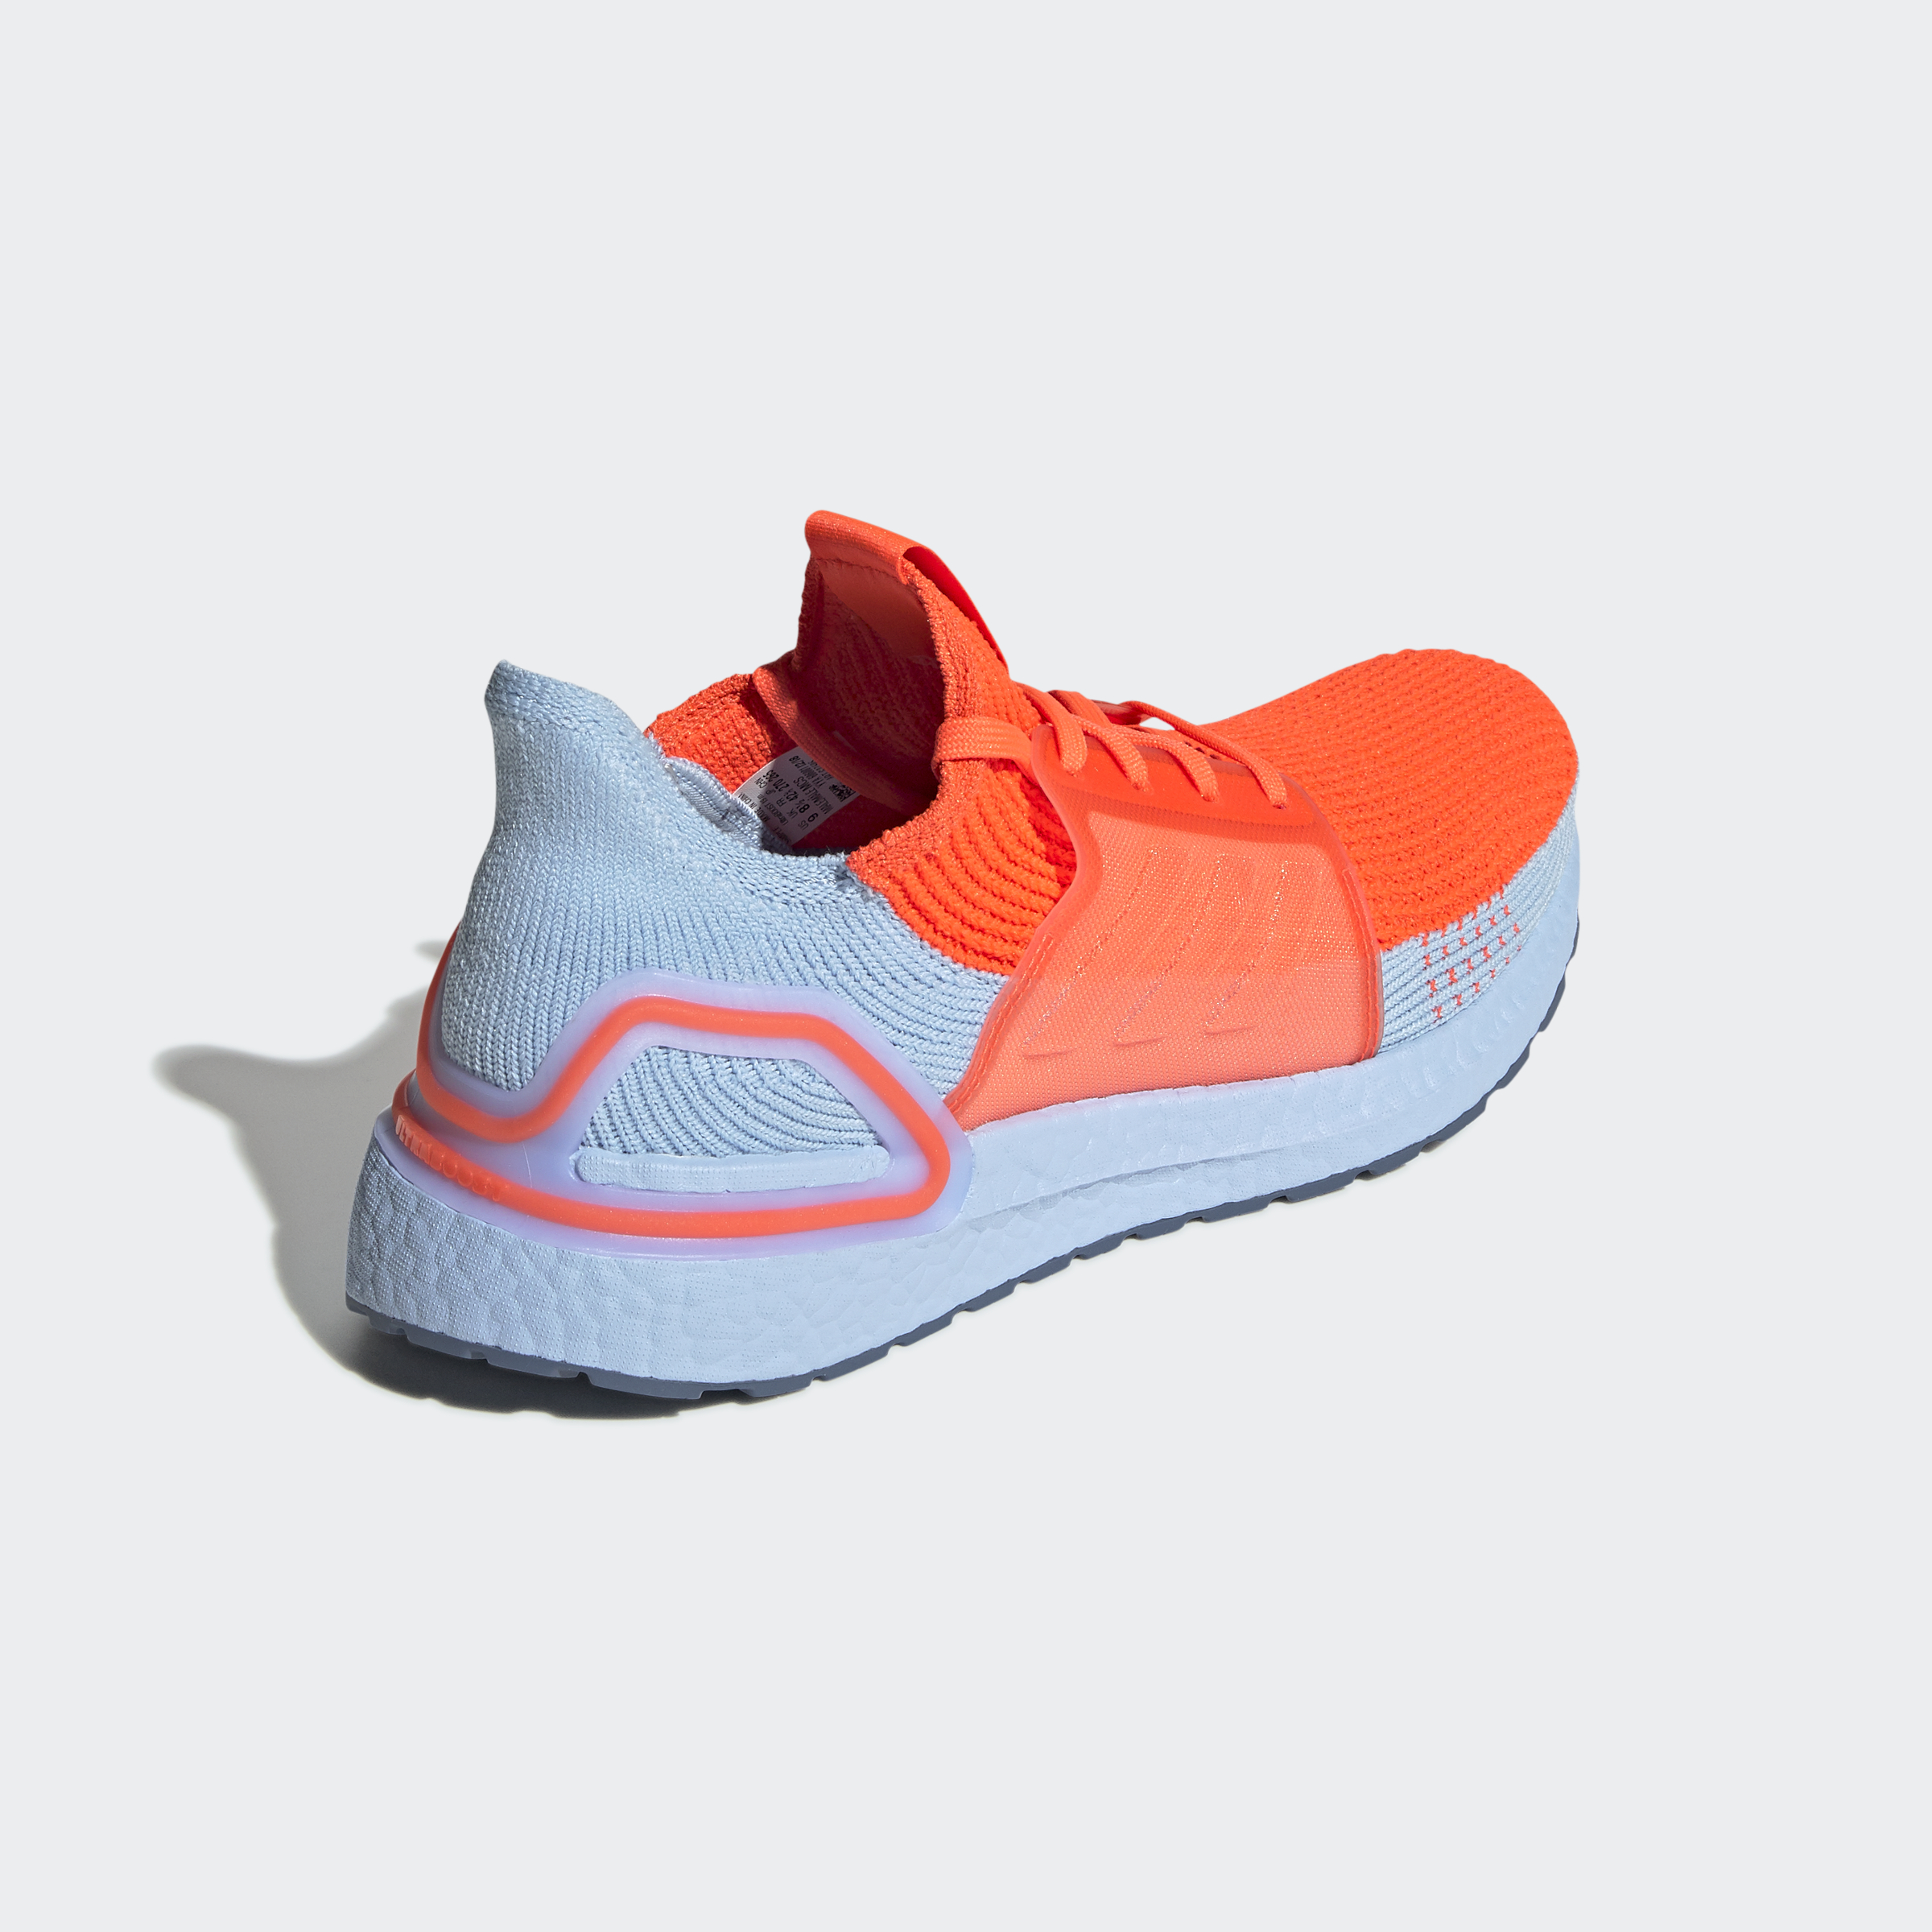 adidas-Ultraboost-19-Shoes-Athletic-amp-Sneakers thumbnail 78